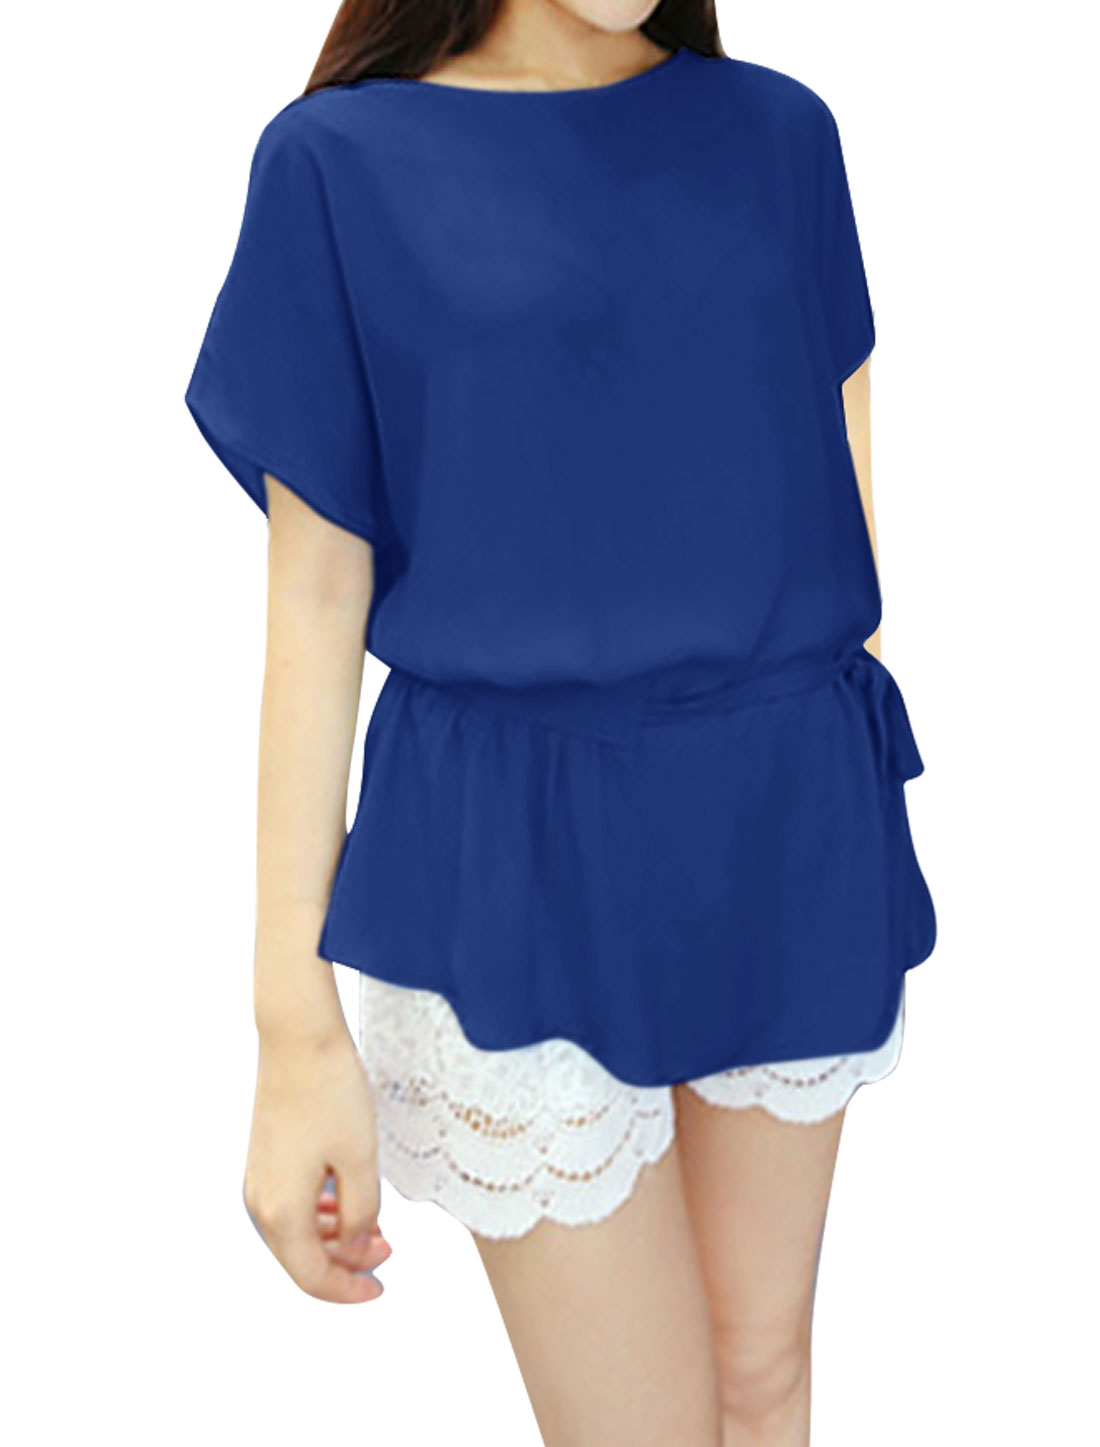 Women Batwing Sleeve Semi Sheer Summer Blouse Royal Blue M